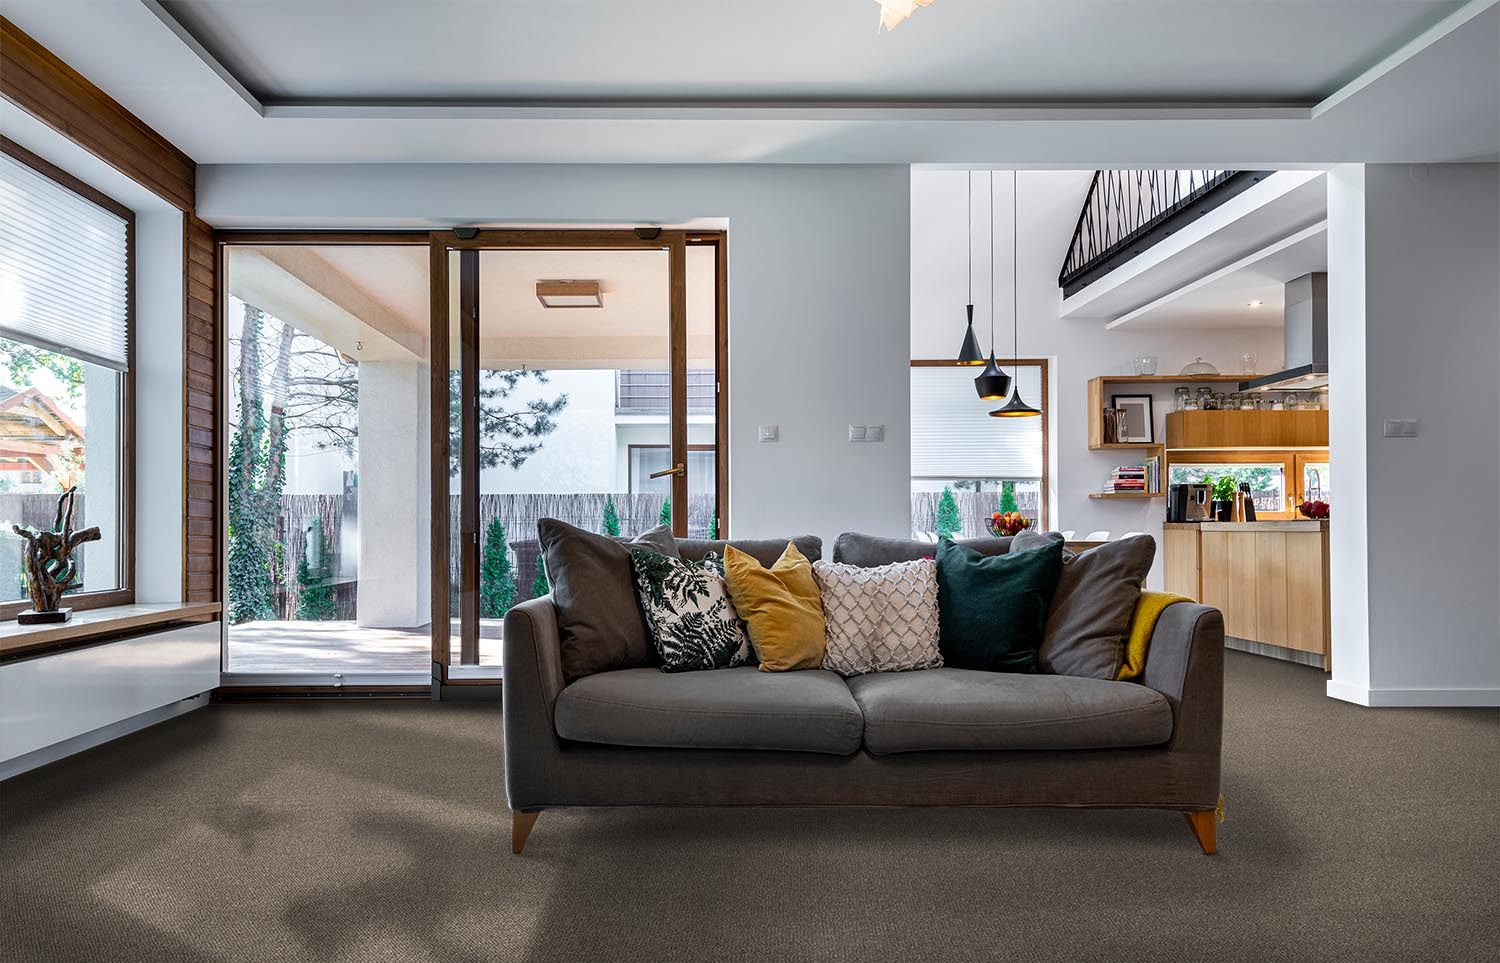 Inclusive - Come Together contemporary living room